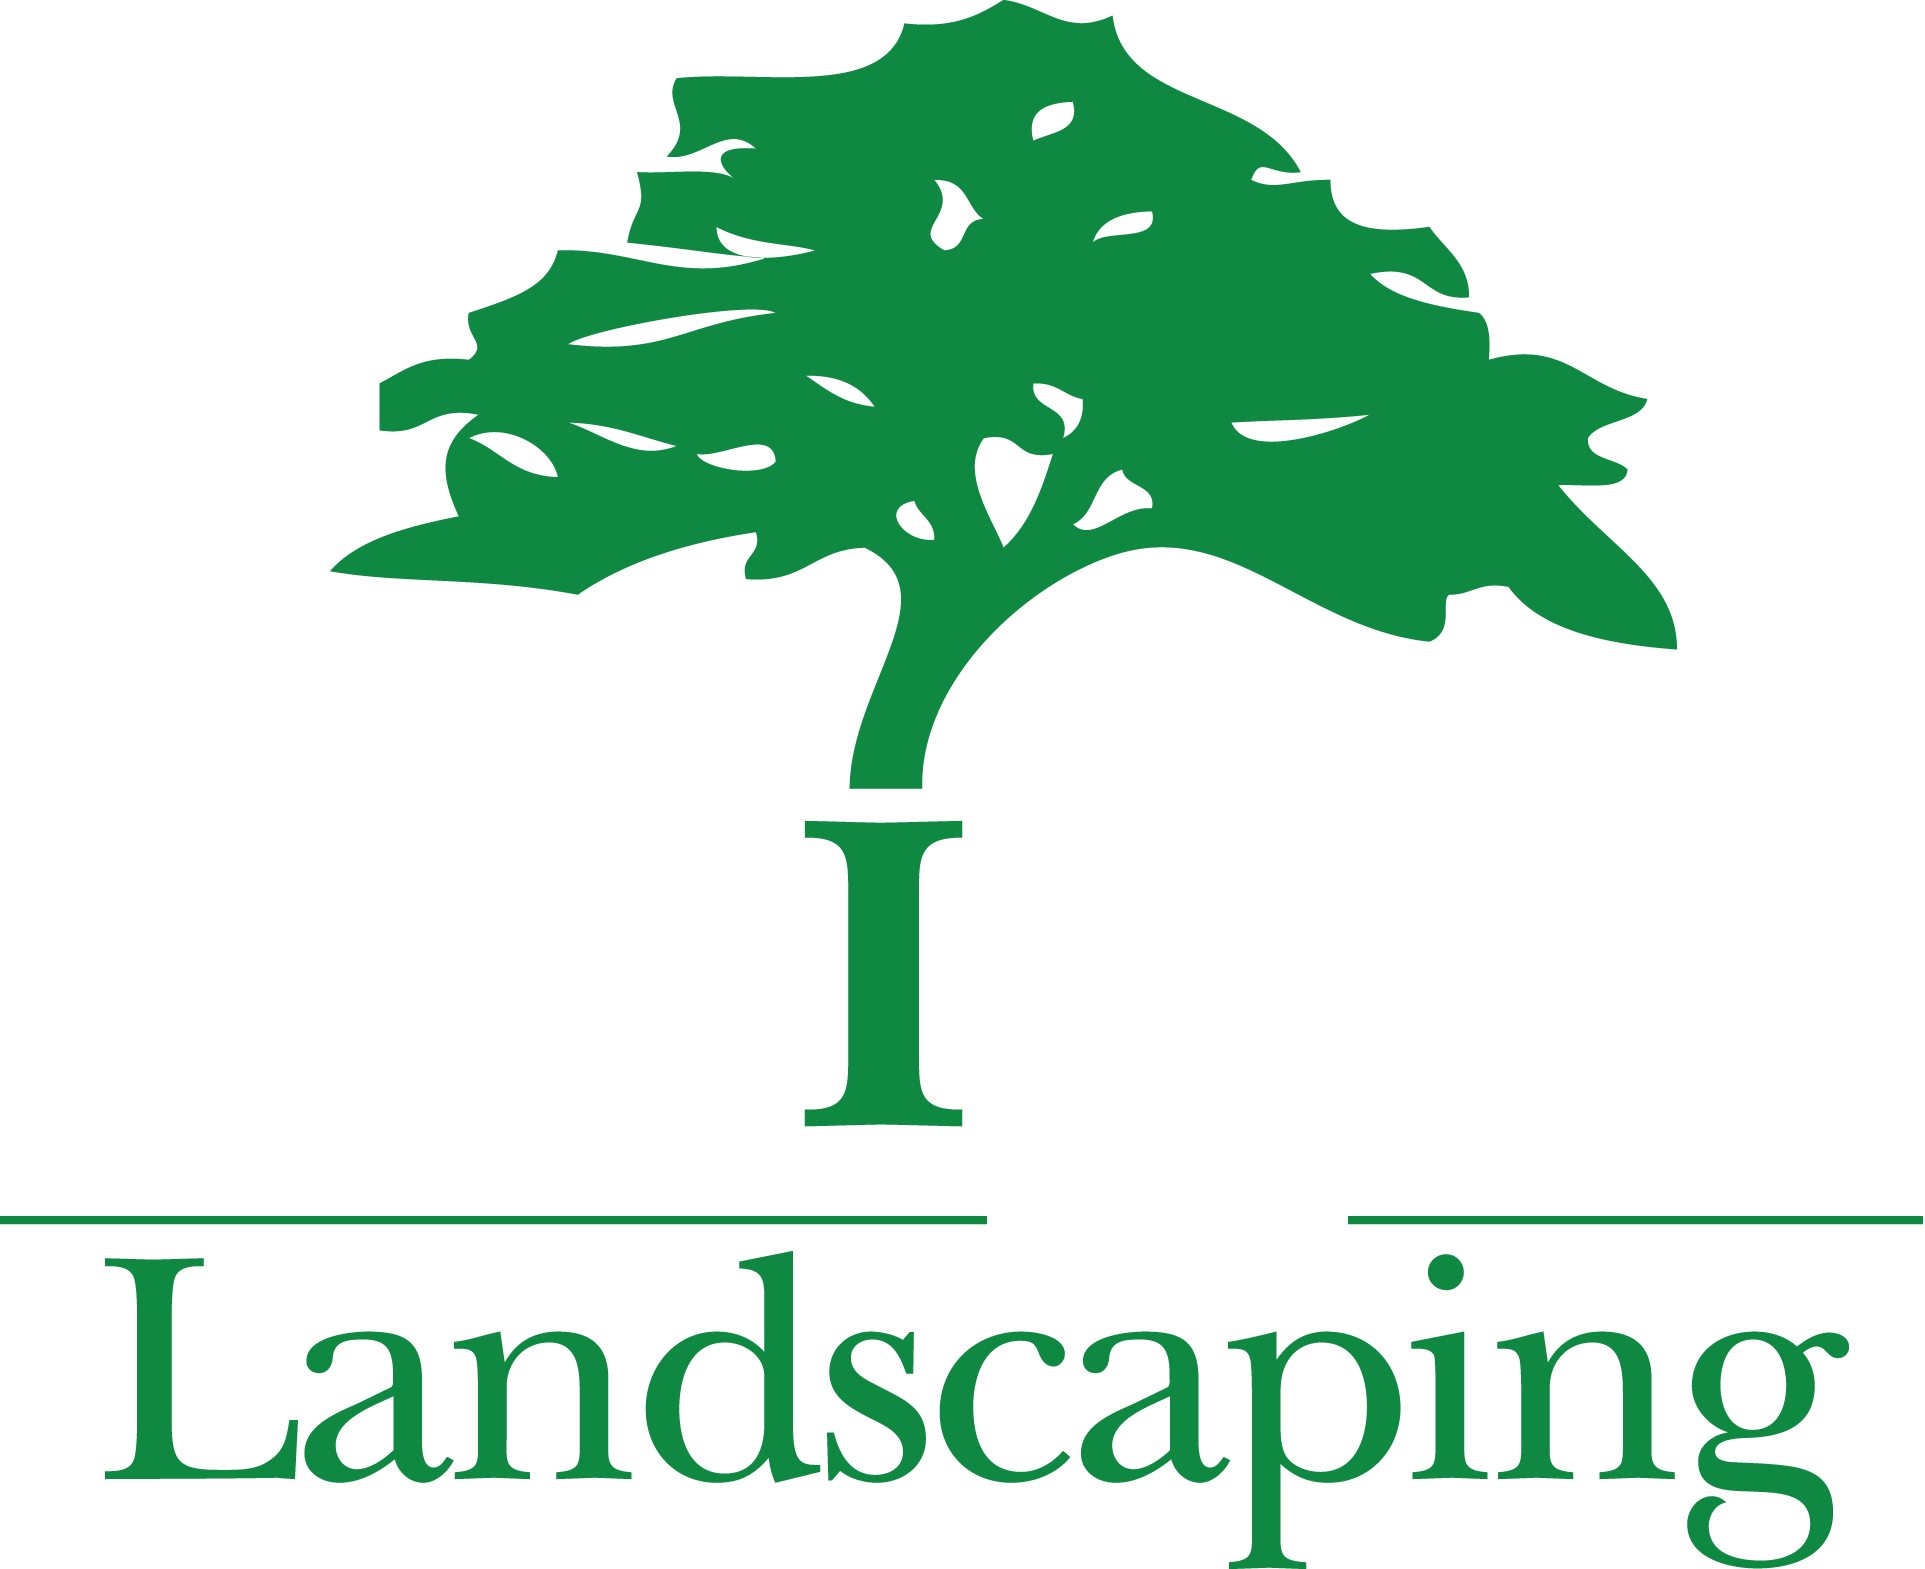 Unique landscaping fire featured. Fireplace clipart outdoor fireplace